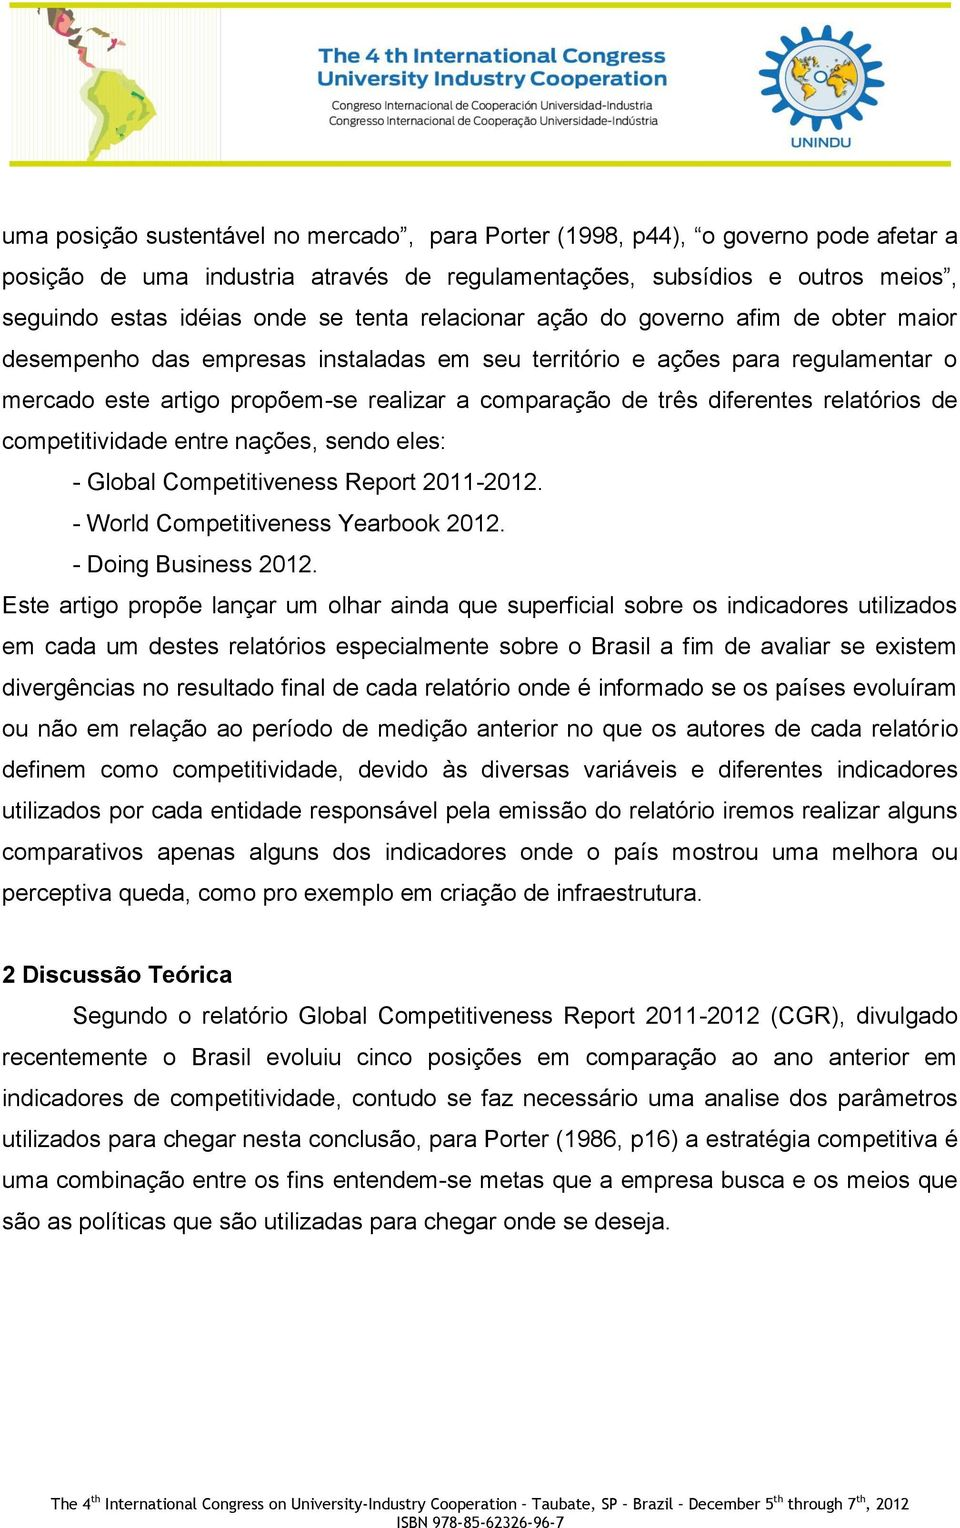 relatórios de competitividade entre nações, sendo eles: - Global Competitiveness Report 2011-2012. - World Competitiveness Yearbook 2012. - Doing Business 2012.